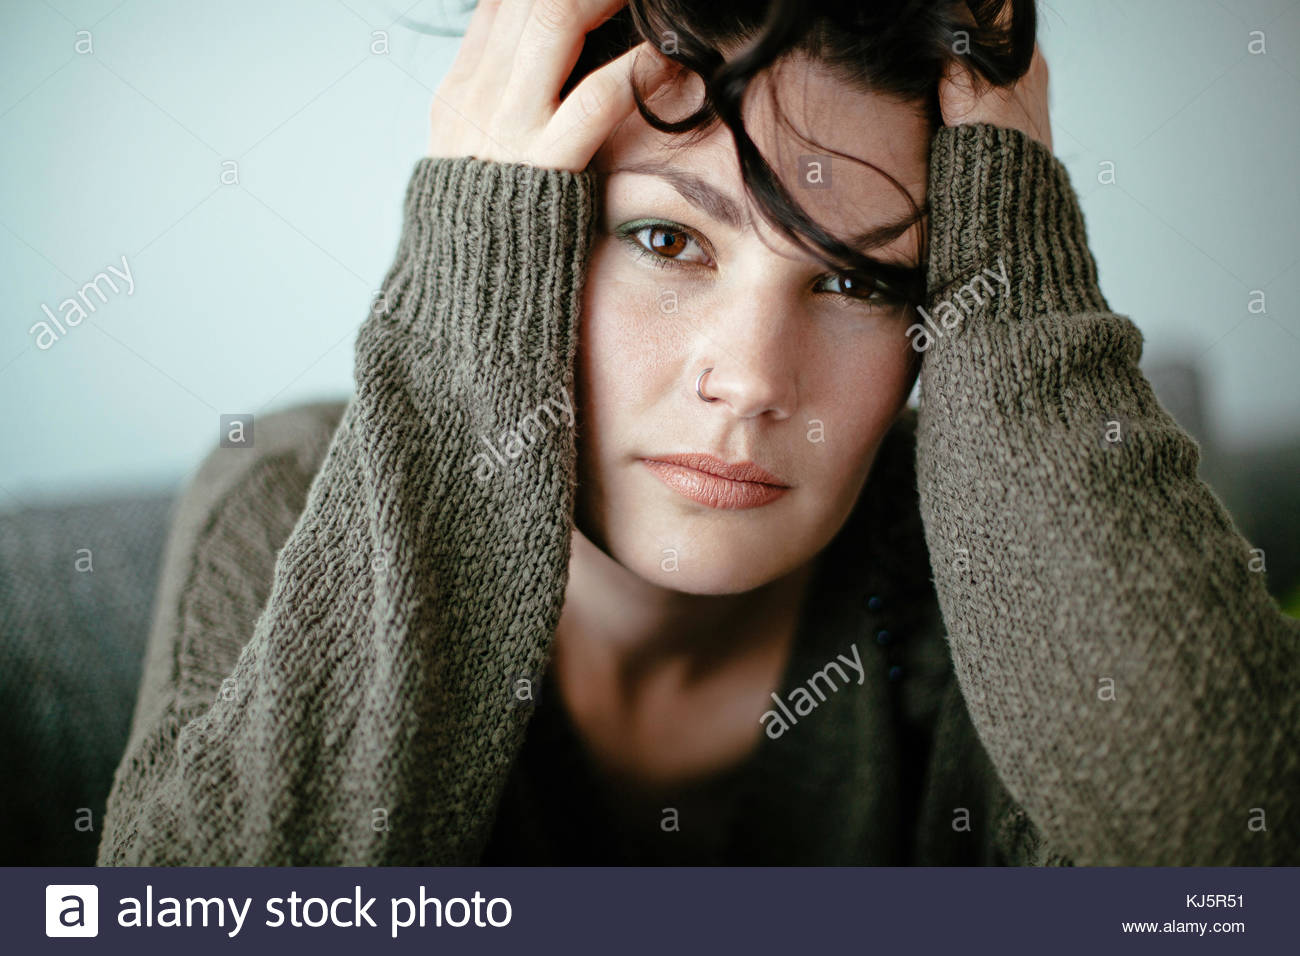 woman with head in hands - Stock Image